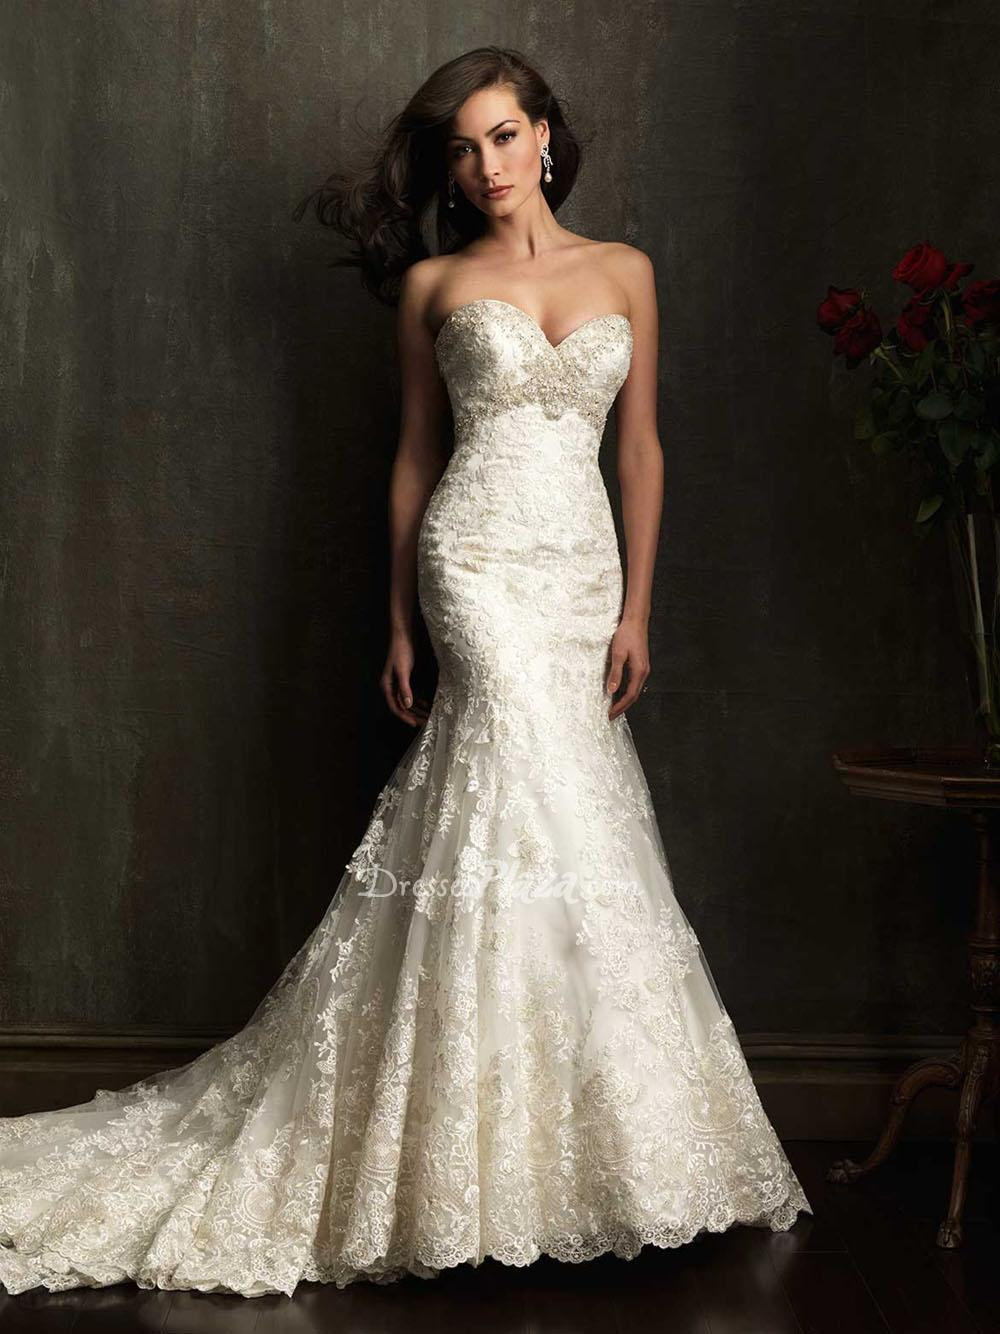 a classical collection of wedding dresses with beading and lace sang maestro